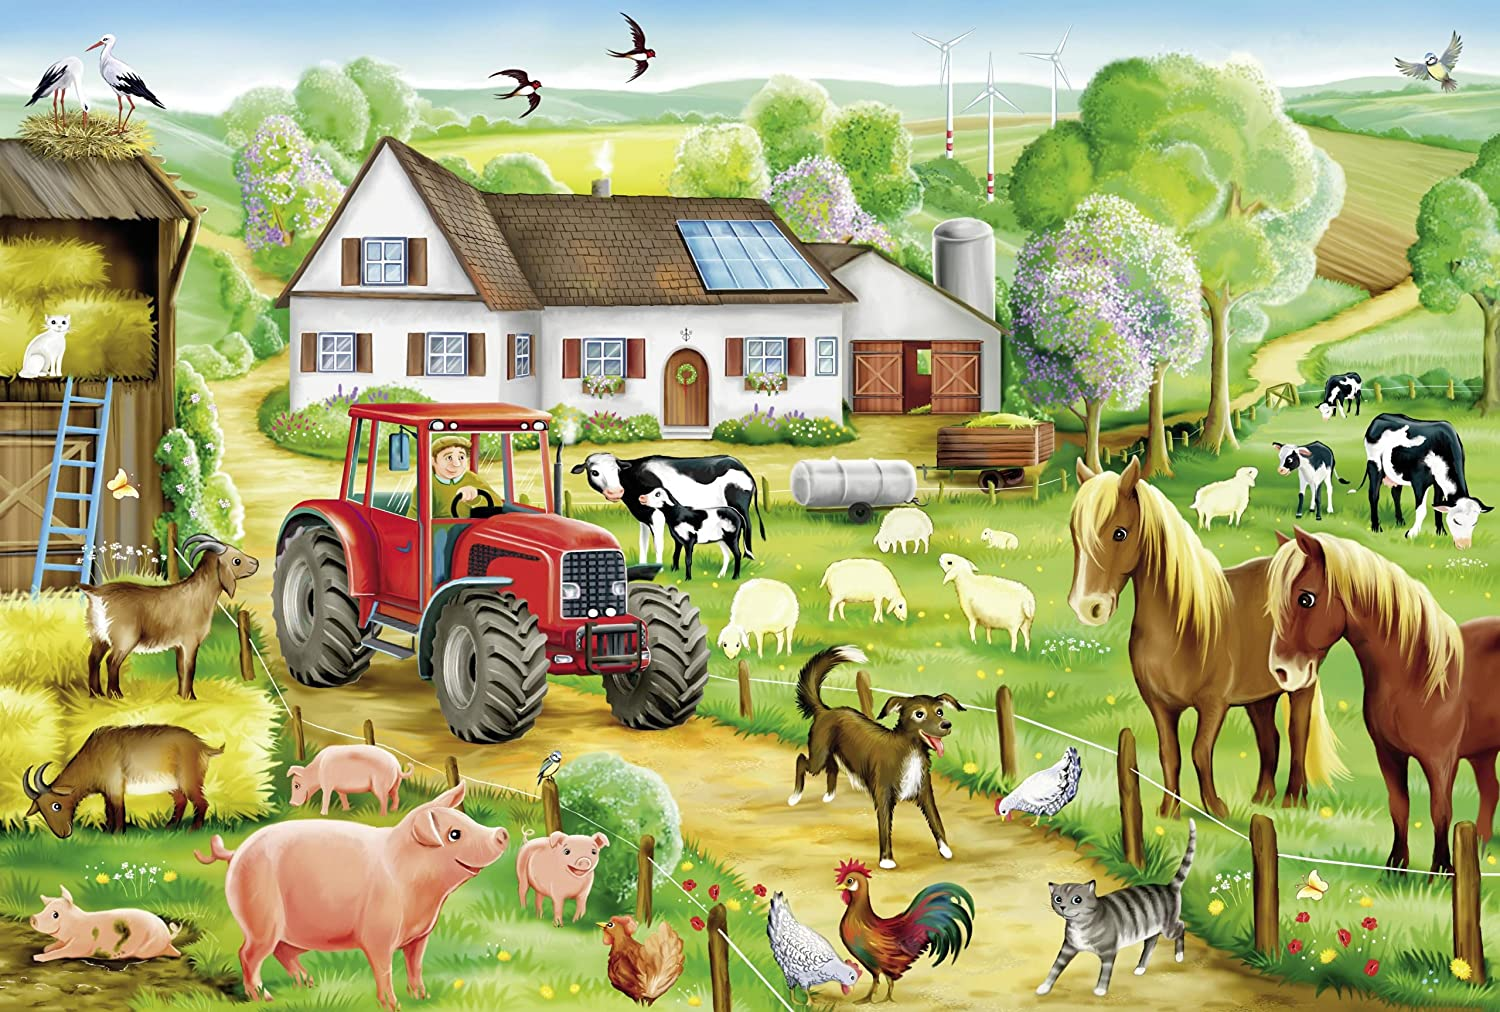 Merry Farmyard Farm Jigsaw Puzzle